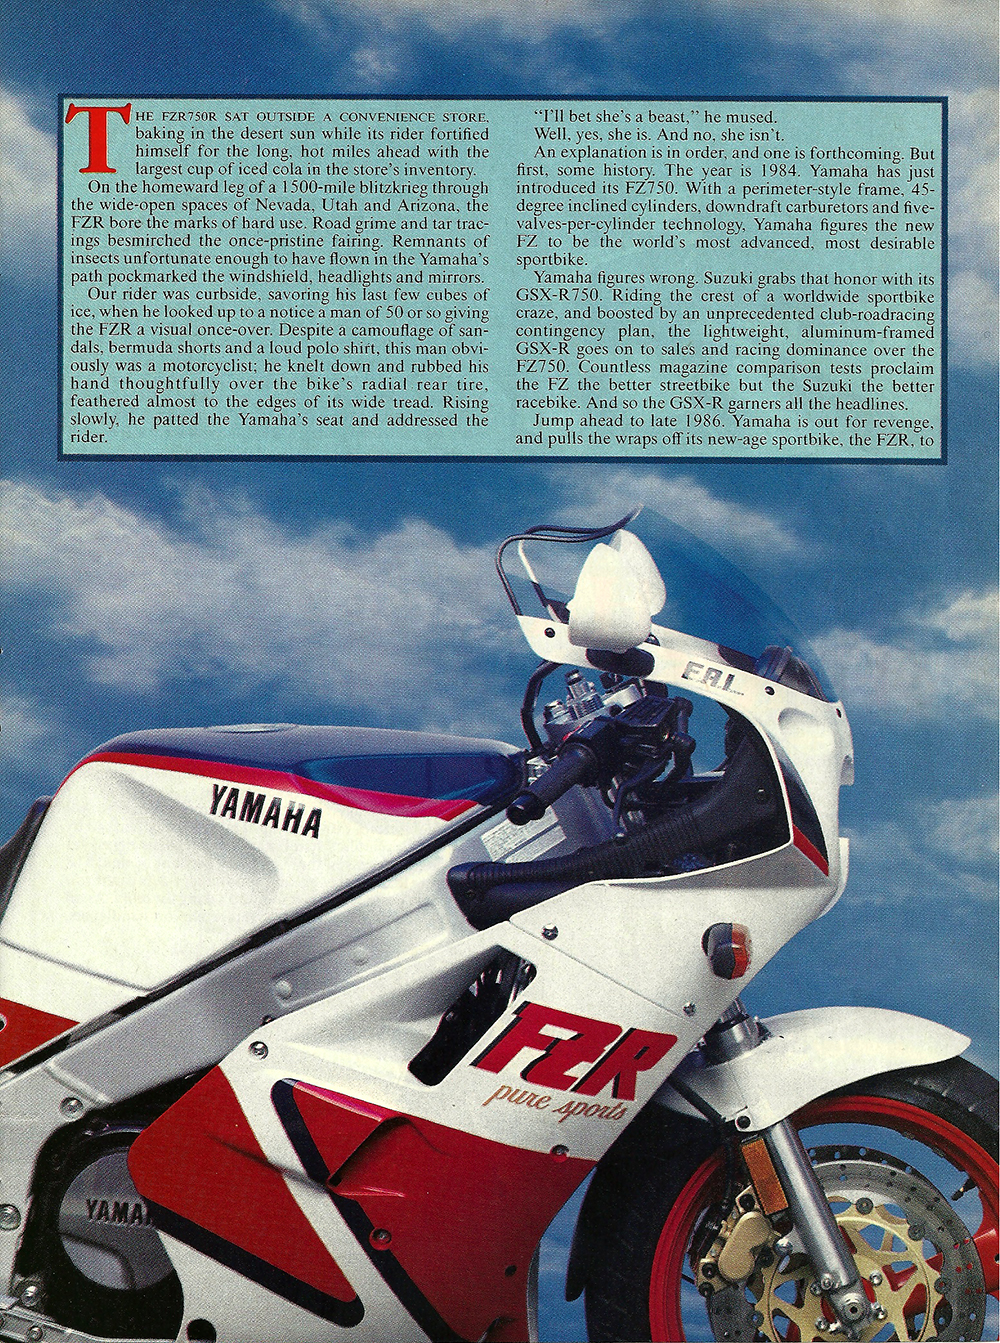 1987 Yamaha FZR750R road test 02.jpg